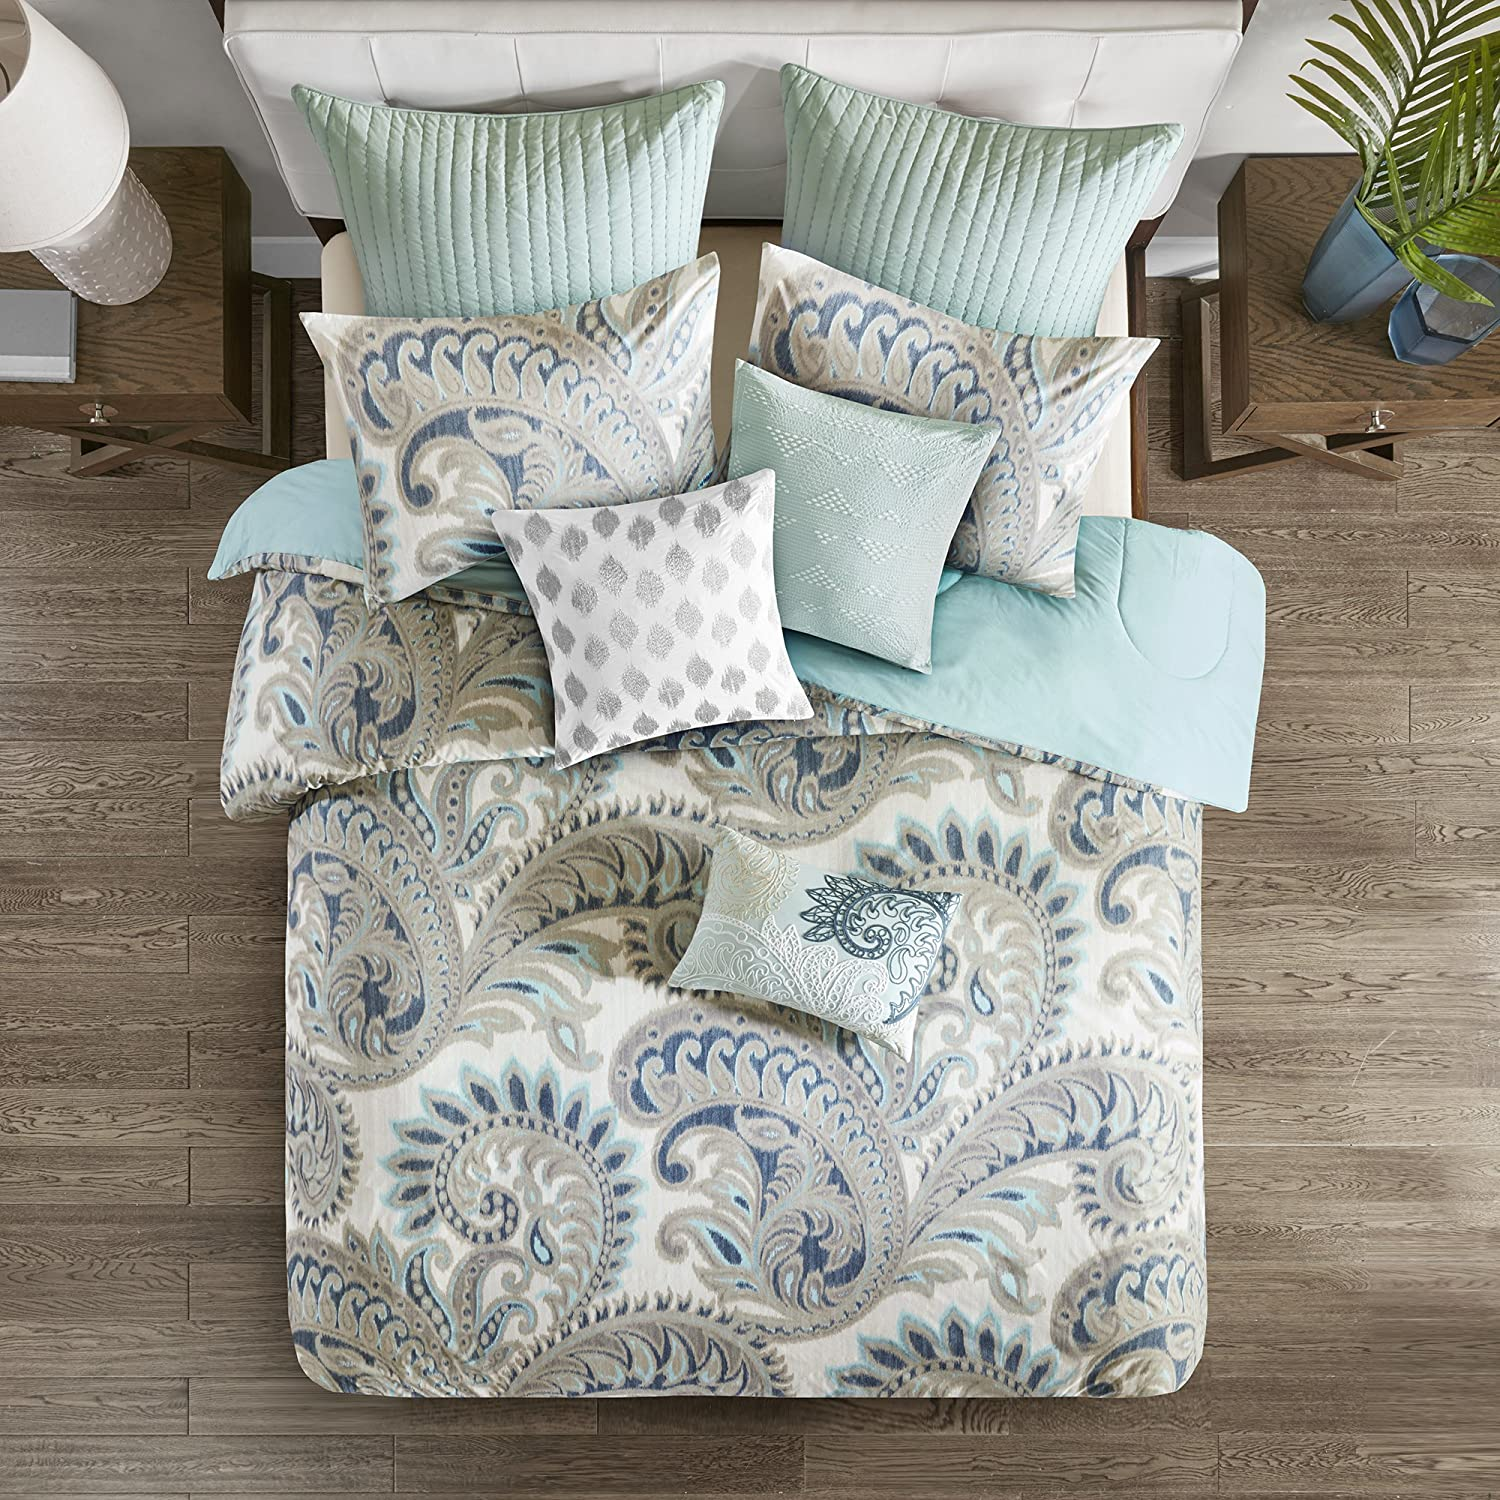 Ink+Ivy Mira Price reduction Duvet Cover King Size sale - Teal Paisley